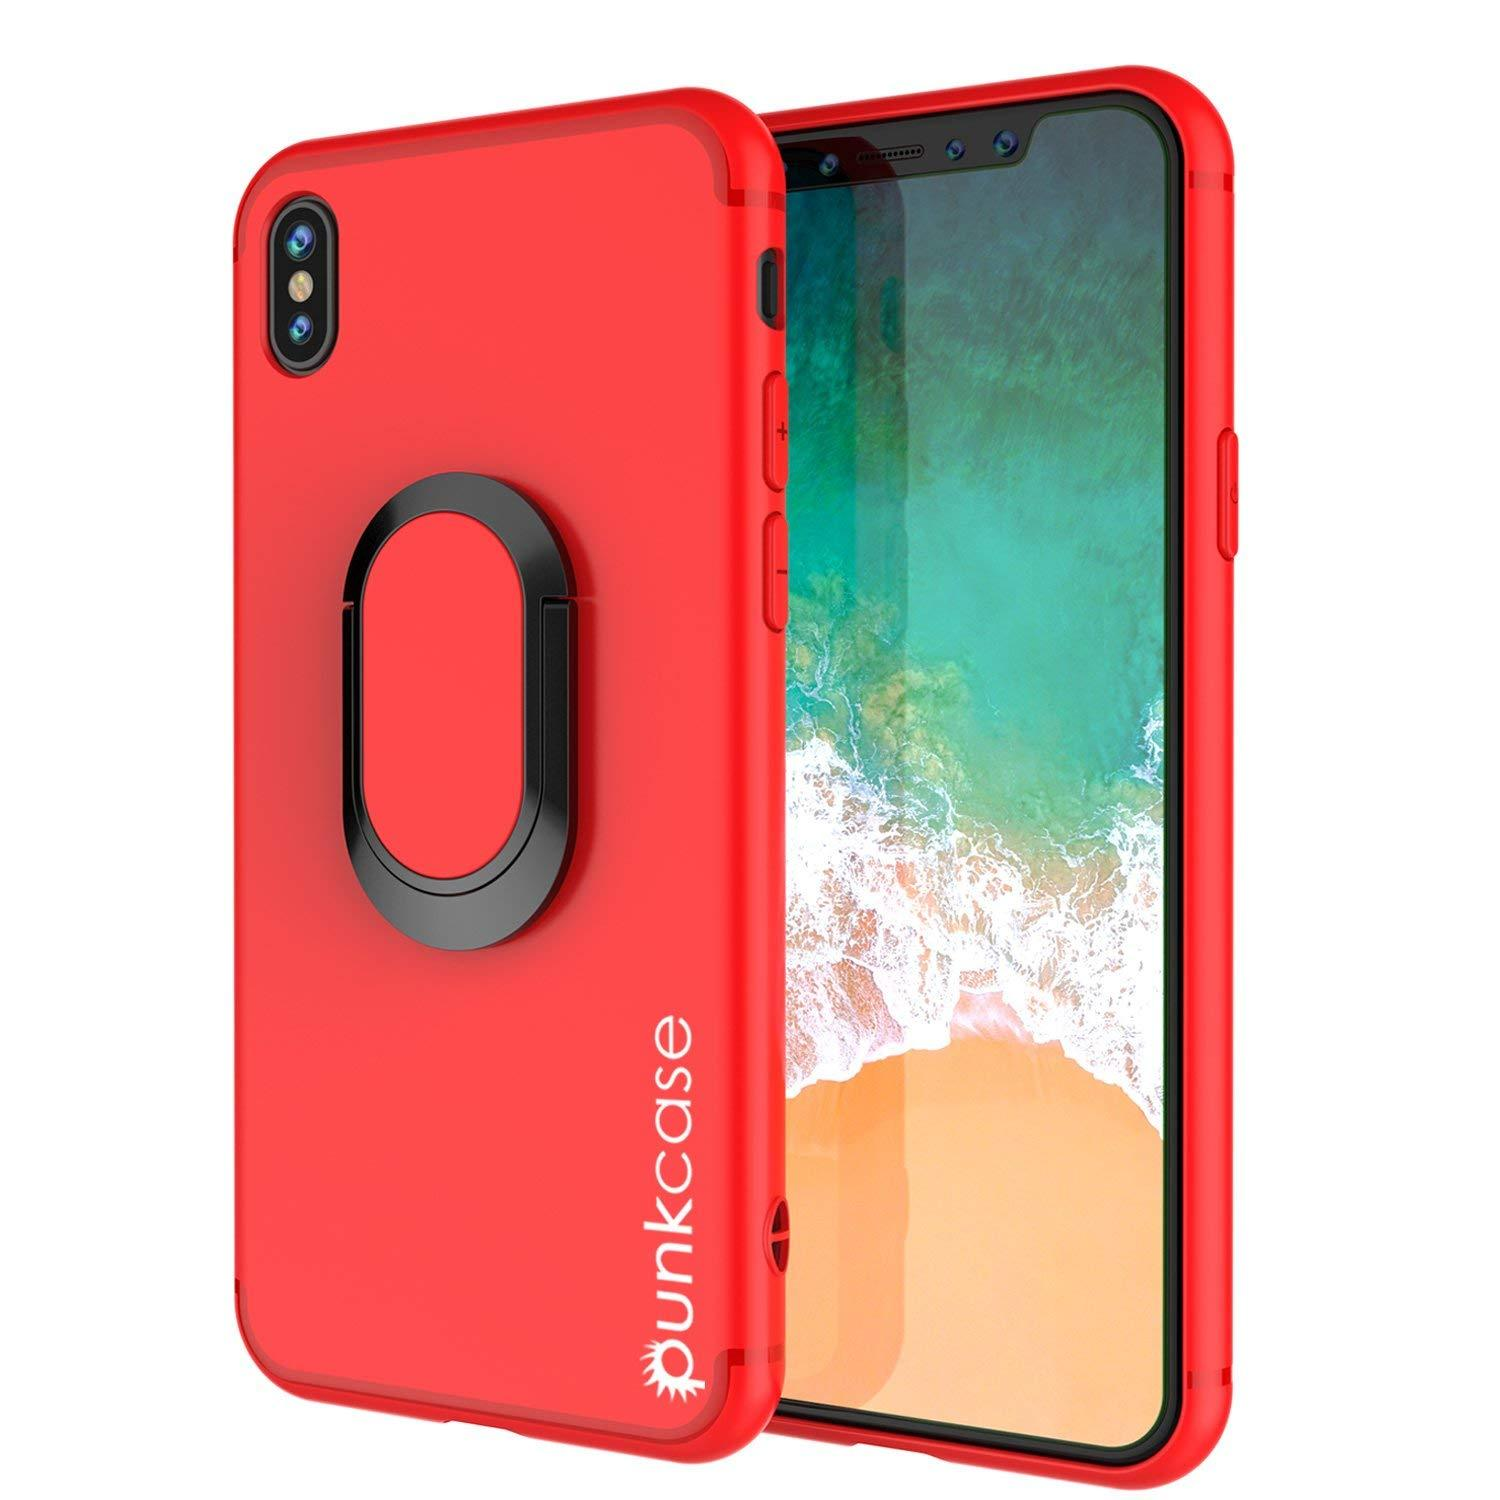 iPhone XR Case, Punkcase Magnetix Protective TPU Cover W/ Kickstand, Tempered Glass Screen Protector [Red]